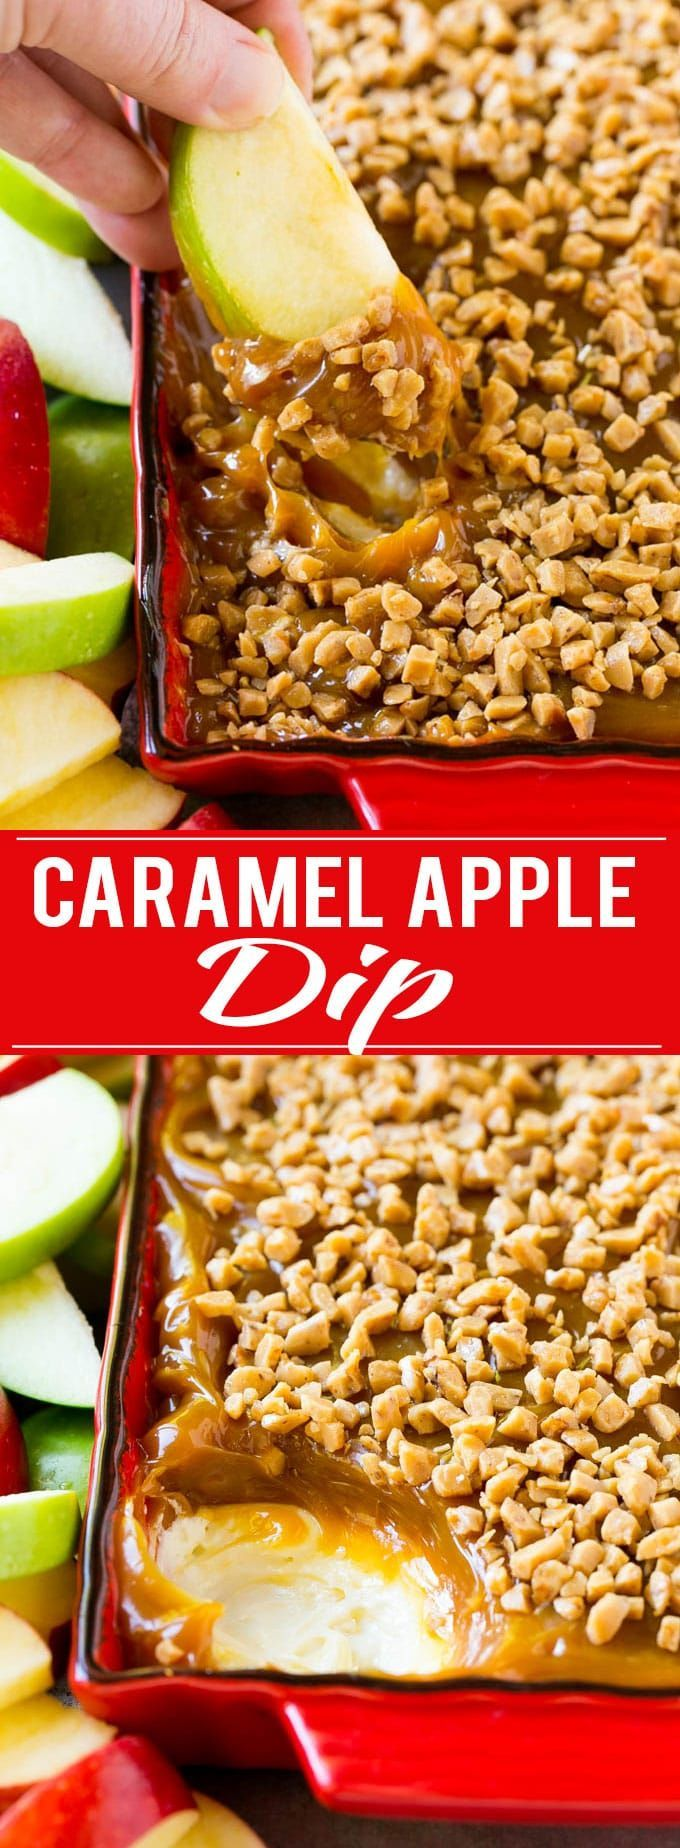 Caramel+Apple+Dip+Recipe+|+Dessert+Dip+Recipe+|+Apple+Recipe+|+Caramel+Apple+Recipe